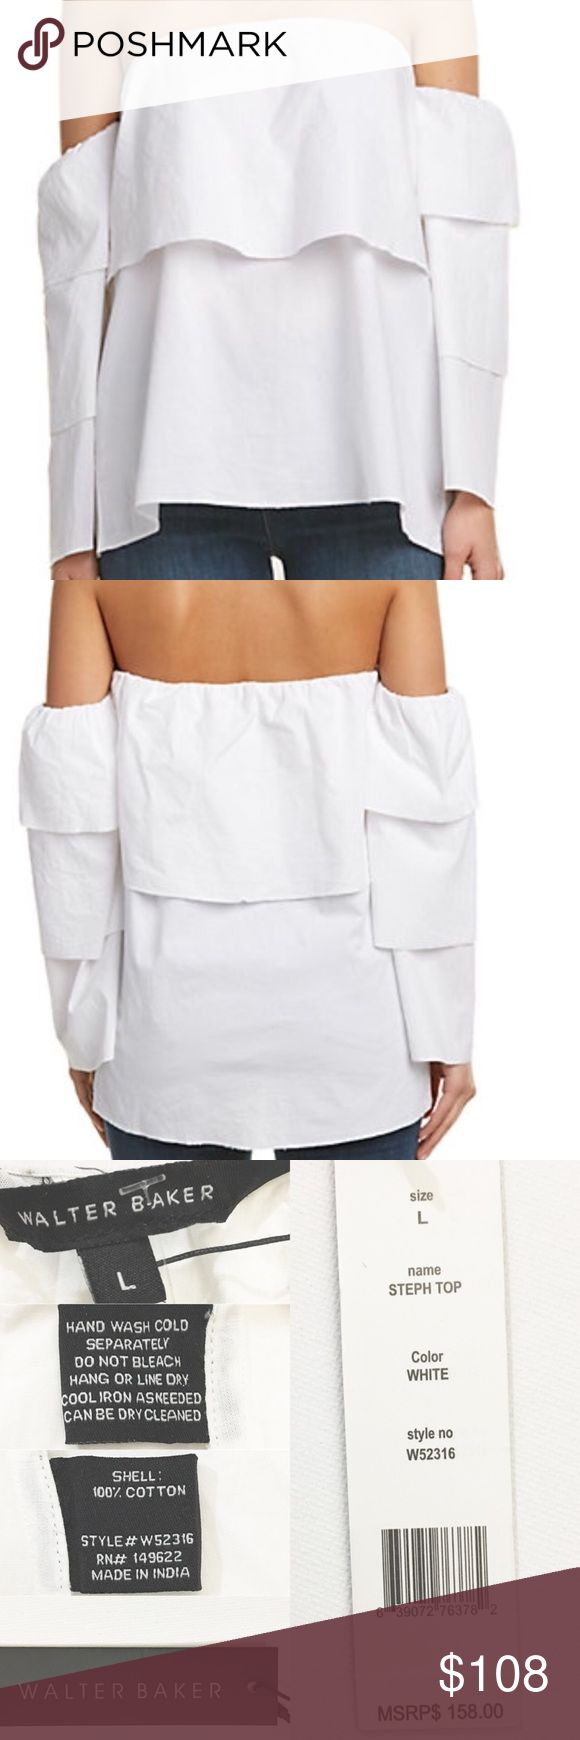 WALTER BAKER Ruffle Sleeve Off-Shoulder Steph Top WALTER BAKER Ruffle Sleeve Off-Shoulder Steph Top   BRAND: Walter Baker SIZE: Large COLOR: White MATERIAL: 100% cotton  CARE: Hang wash cold separately. Hang or Line dry CONDITION: NEW with tags STYLE:W52316 MSRP: $158 DETAILS: Solid white color. 100% cotton fabric. Off-the-shoulder, elasticized and ruffled neckline. Bell sleeve. 3/4-sleeve length with layers detail. Pullover style. Made in India  APPROXIMATE MEASUREMENTS:  Length: 21 inches…